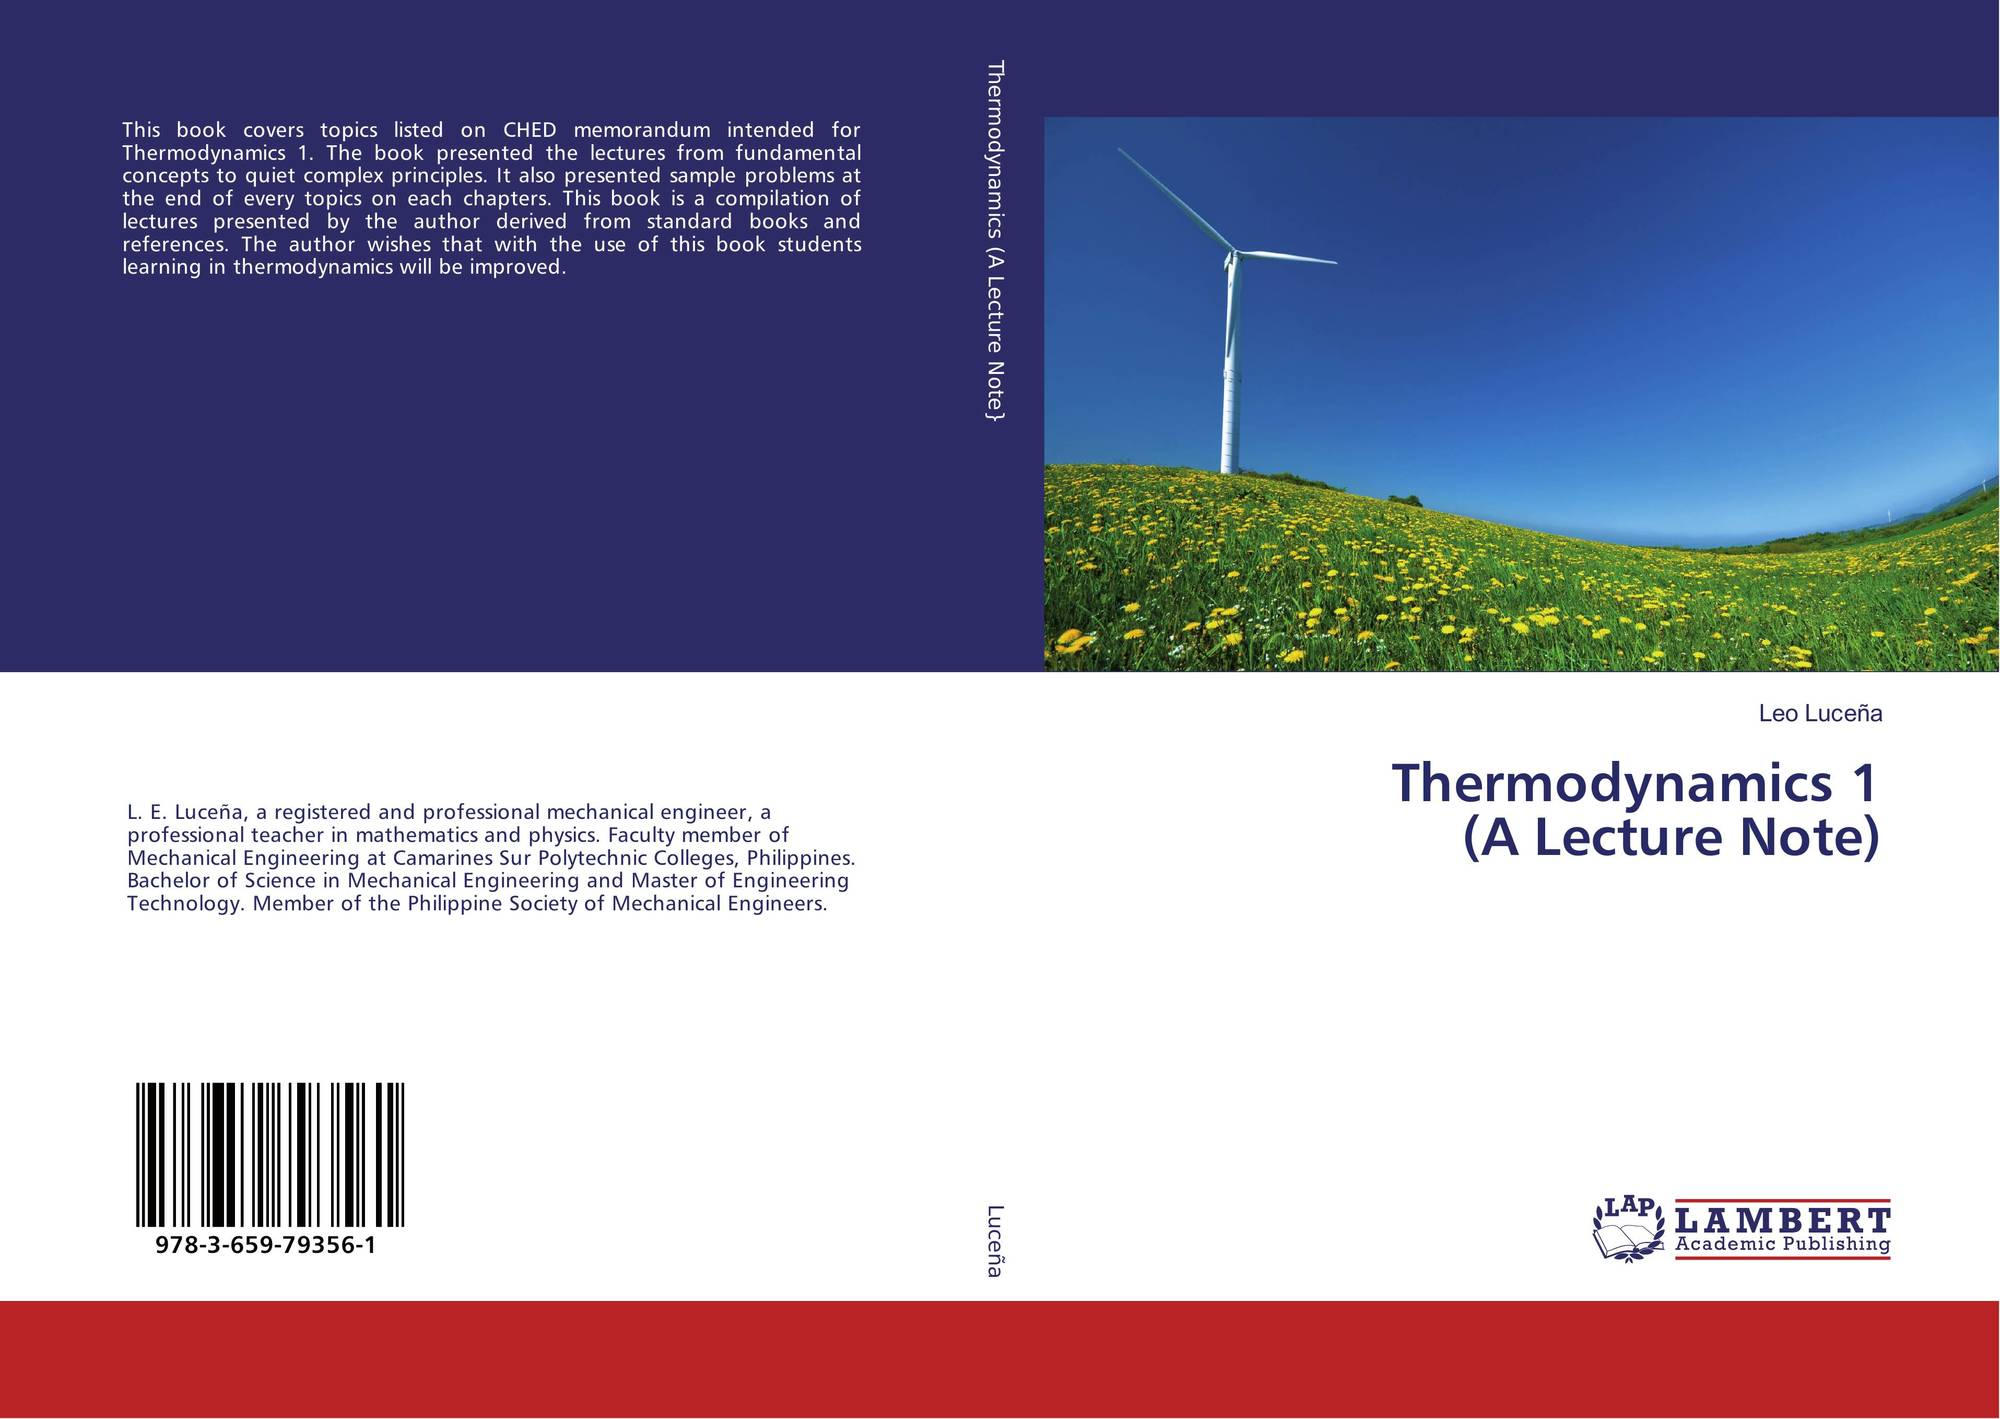 Thermodynamics 1 (A Lecture Note), 978-3-659-79356-1, 3659793566